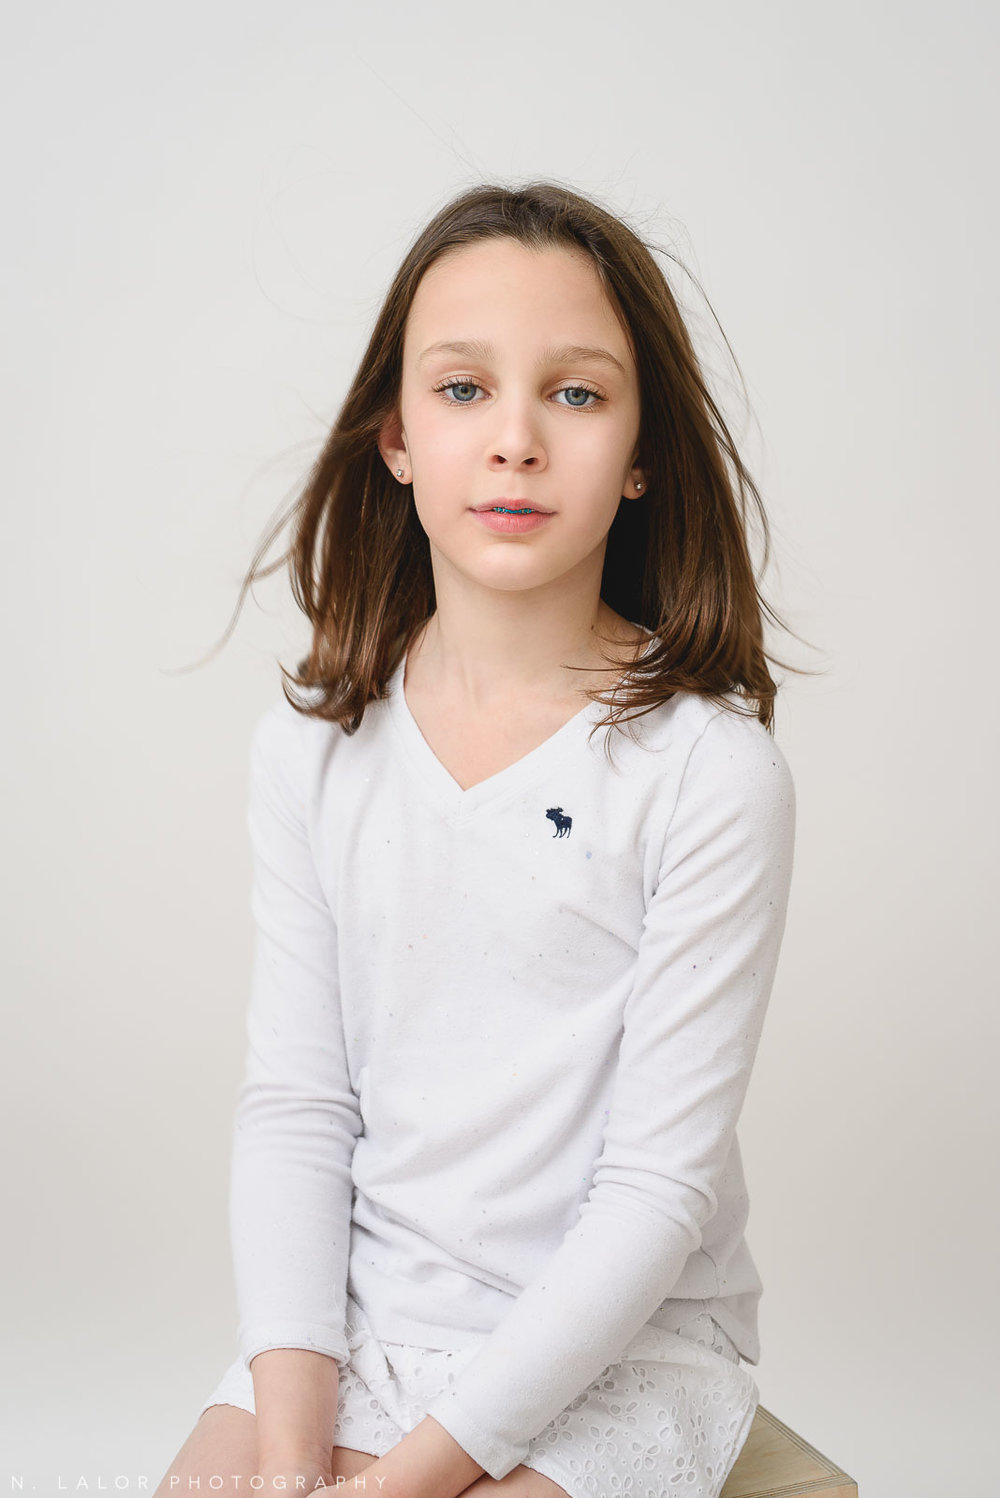 Simple and clean photograph of a tween girl. Studio portrait by N. Lalor Photography in Greenwich, Connecticut.